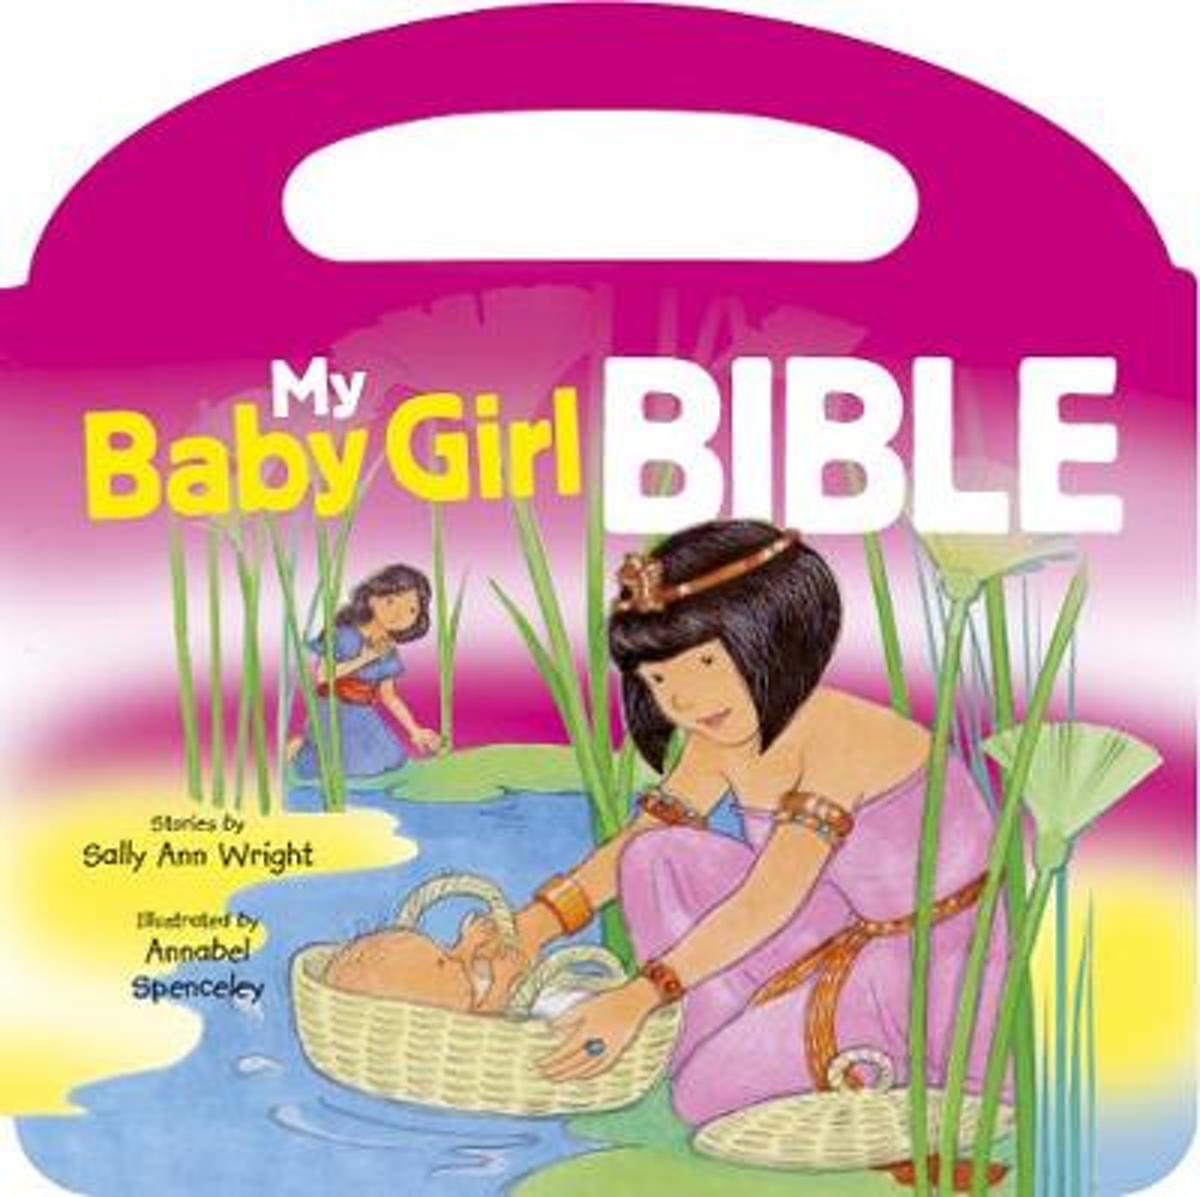 My Baby Girl Bible